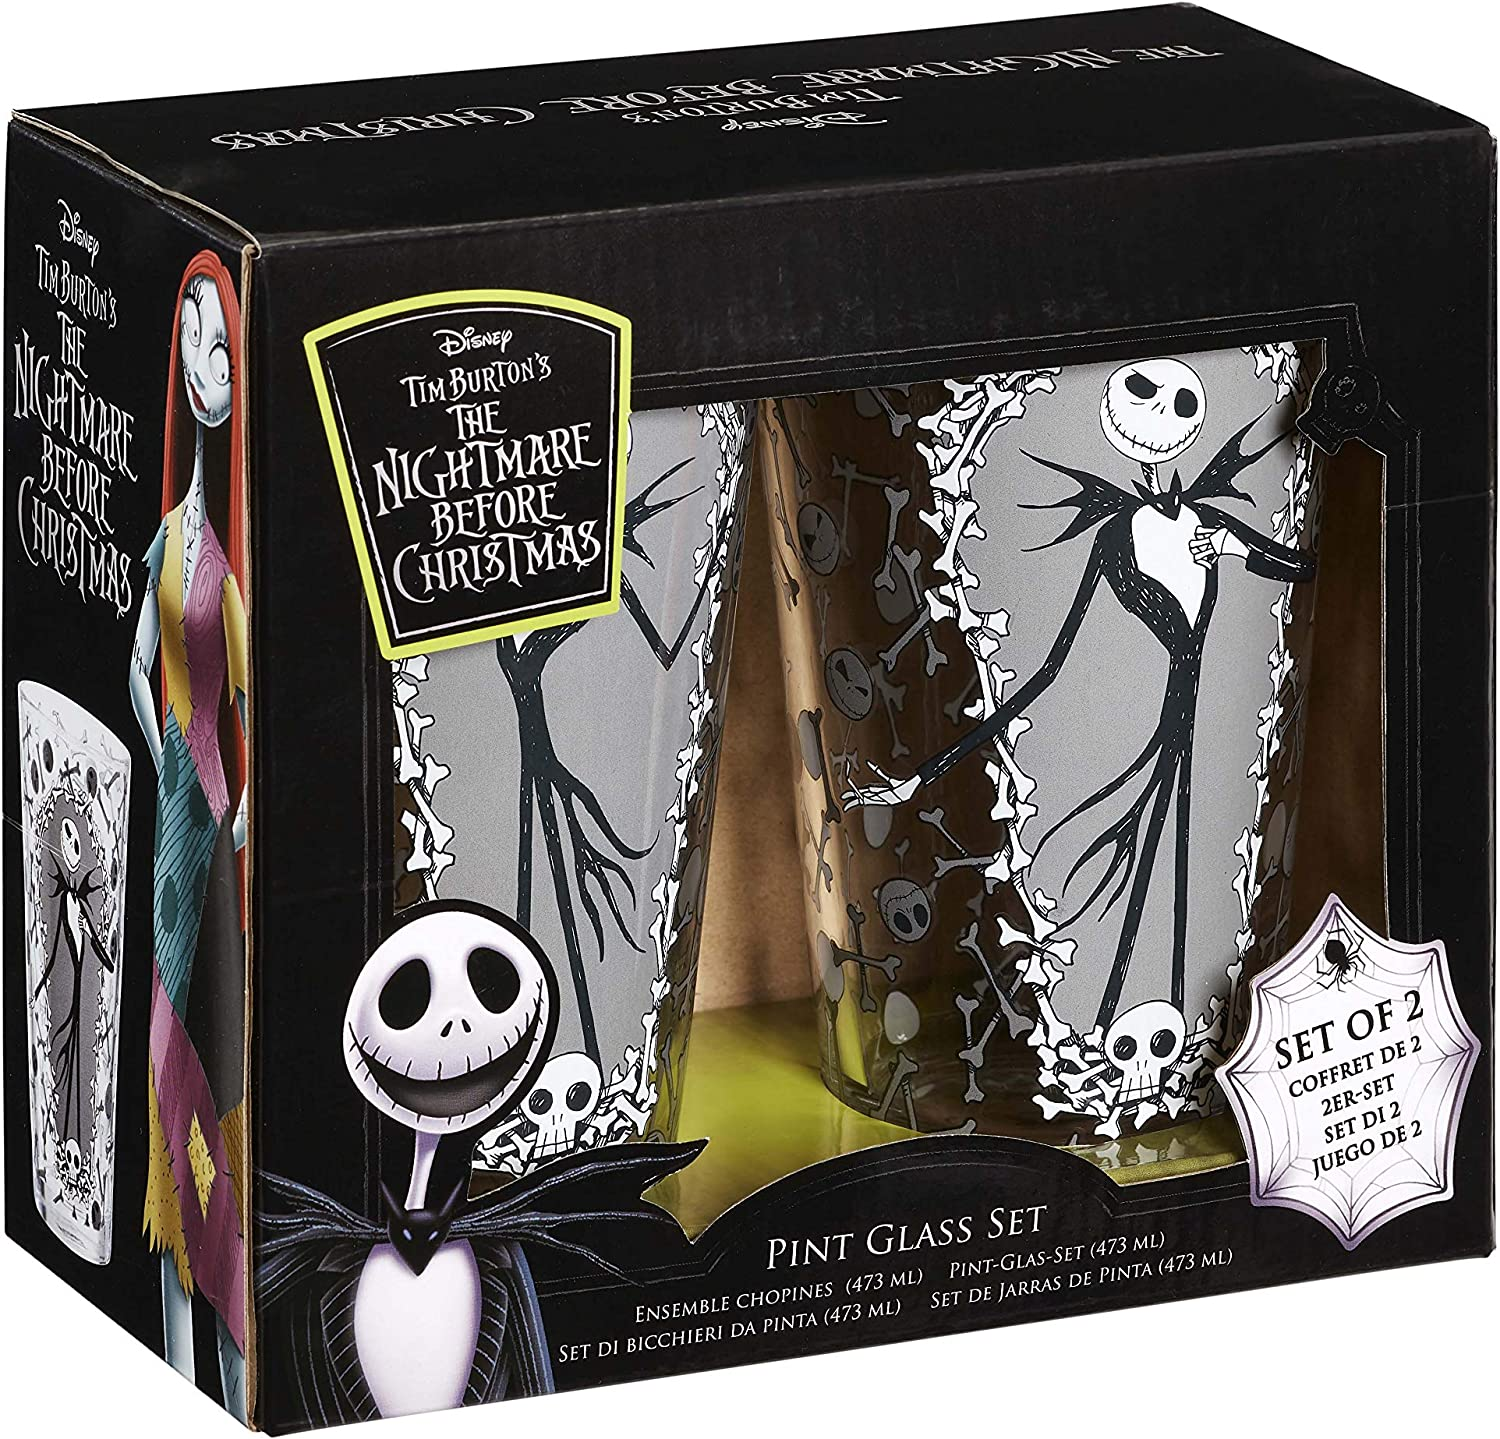 The Nightmare Before Christmas Nightmare Before Christmas: Pint Glass Set: Jack & Bones, Multicolor, One Size, 2: Amazon.es: Hogar